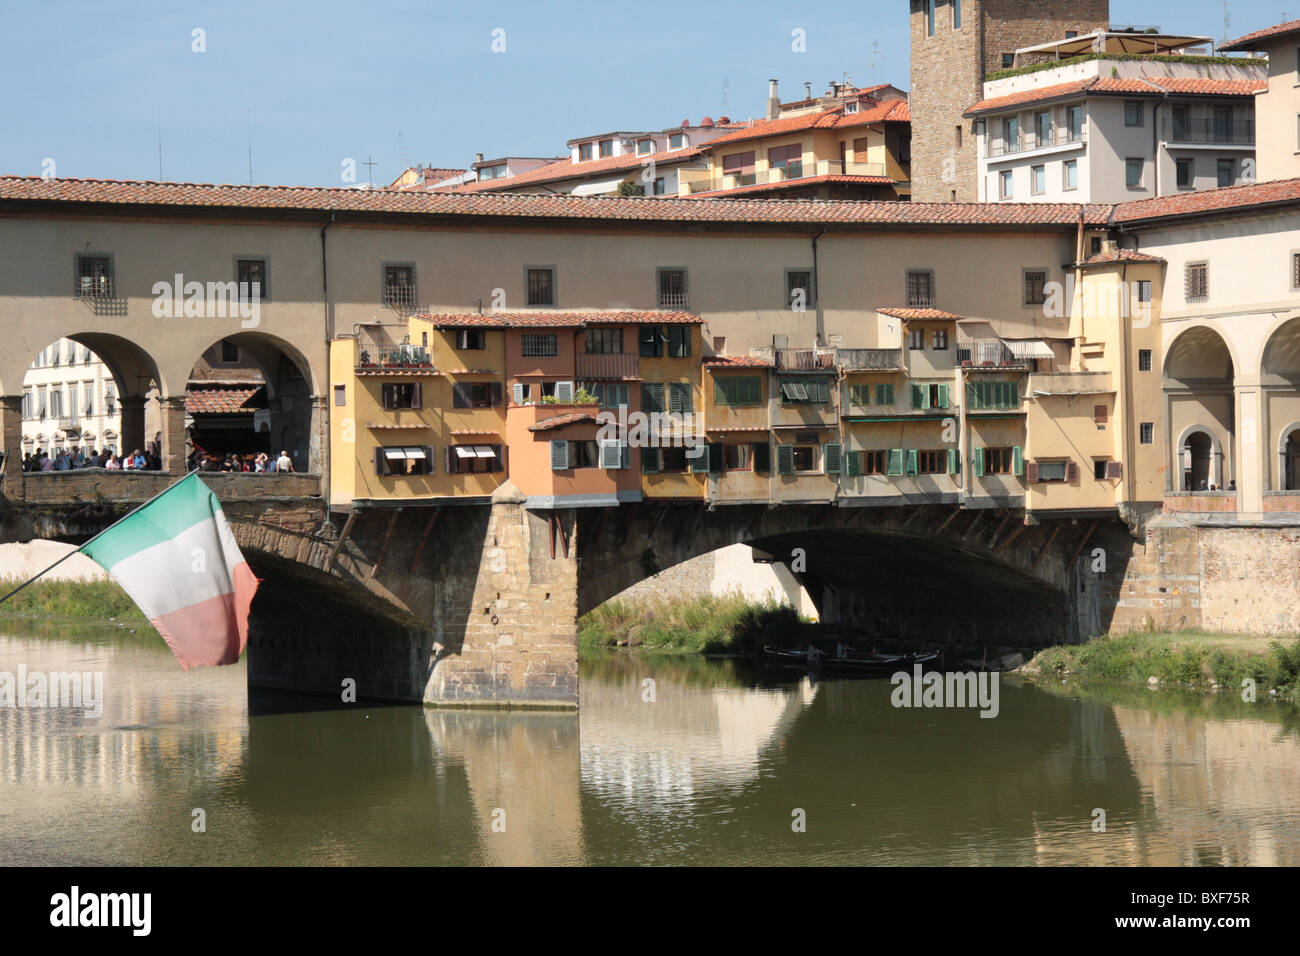 The Ponte Vecchio in Florence - Stock Image